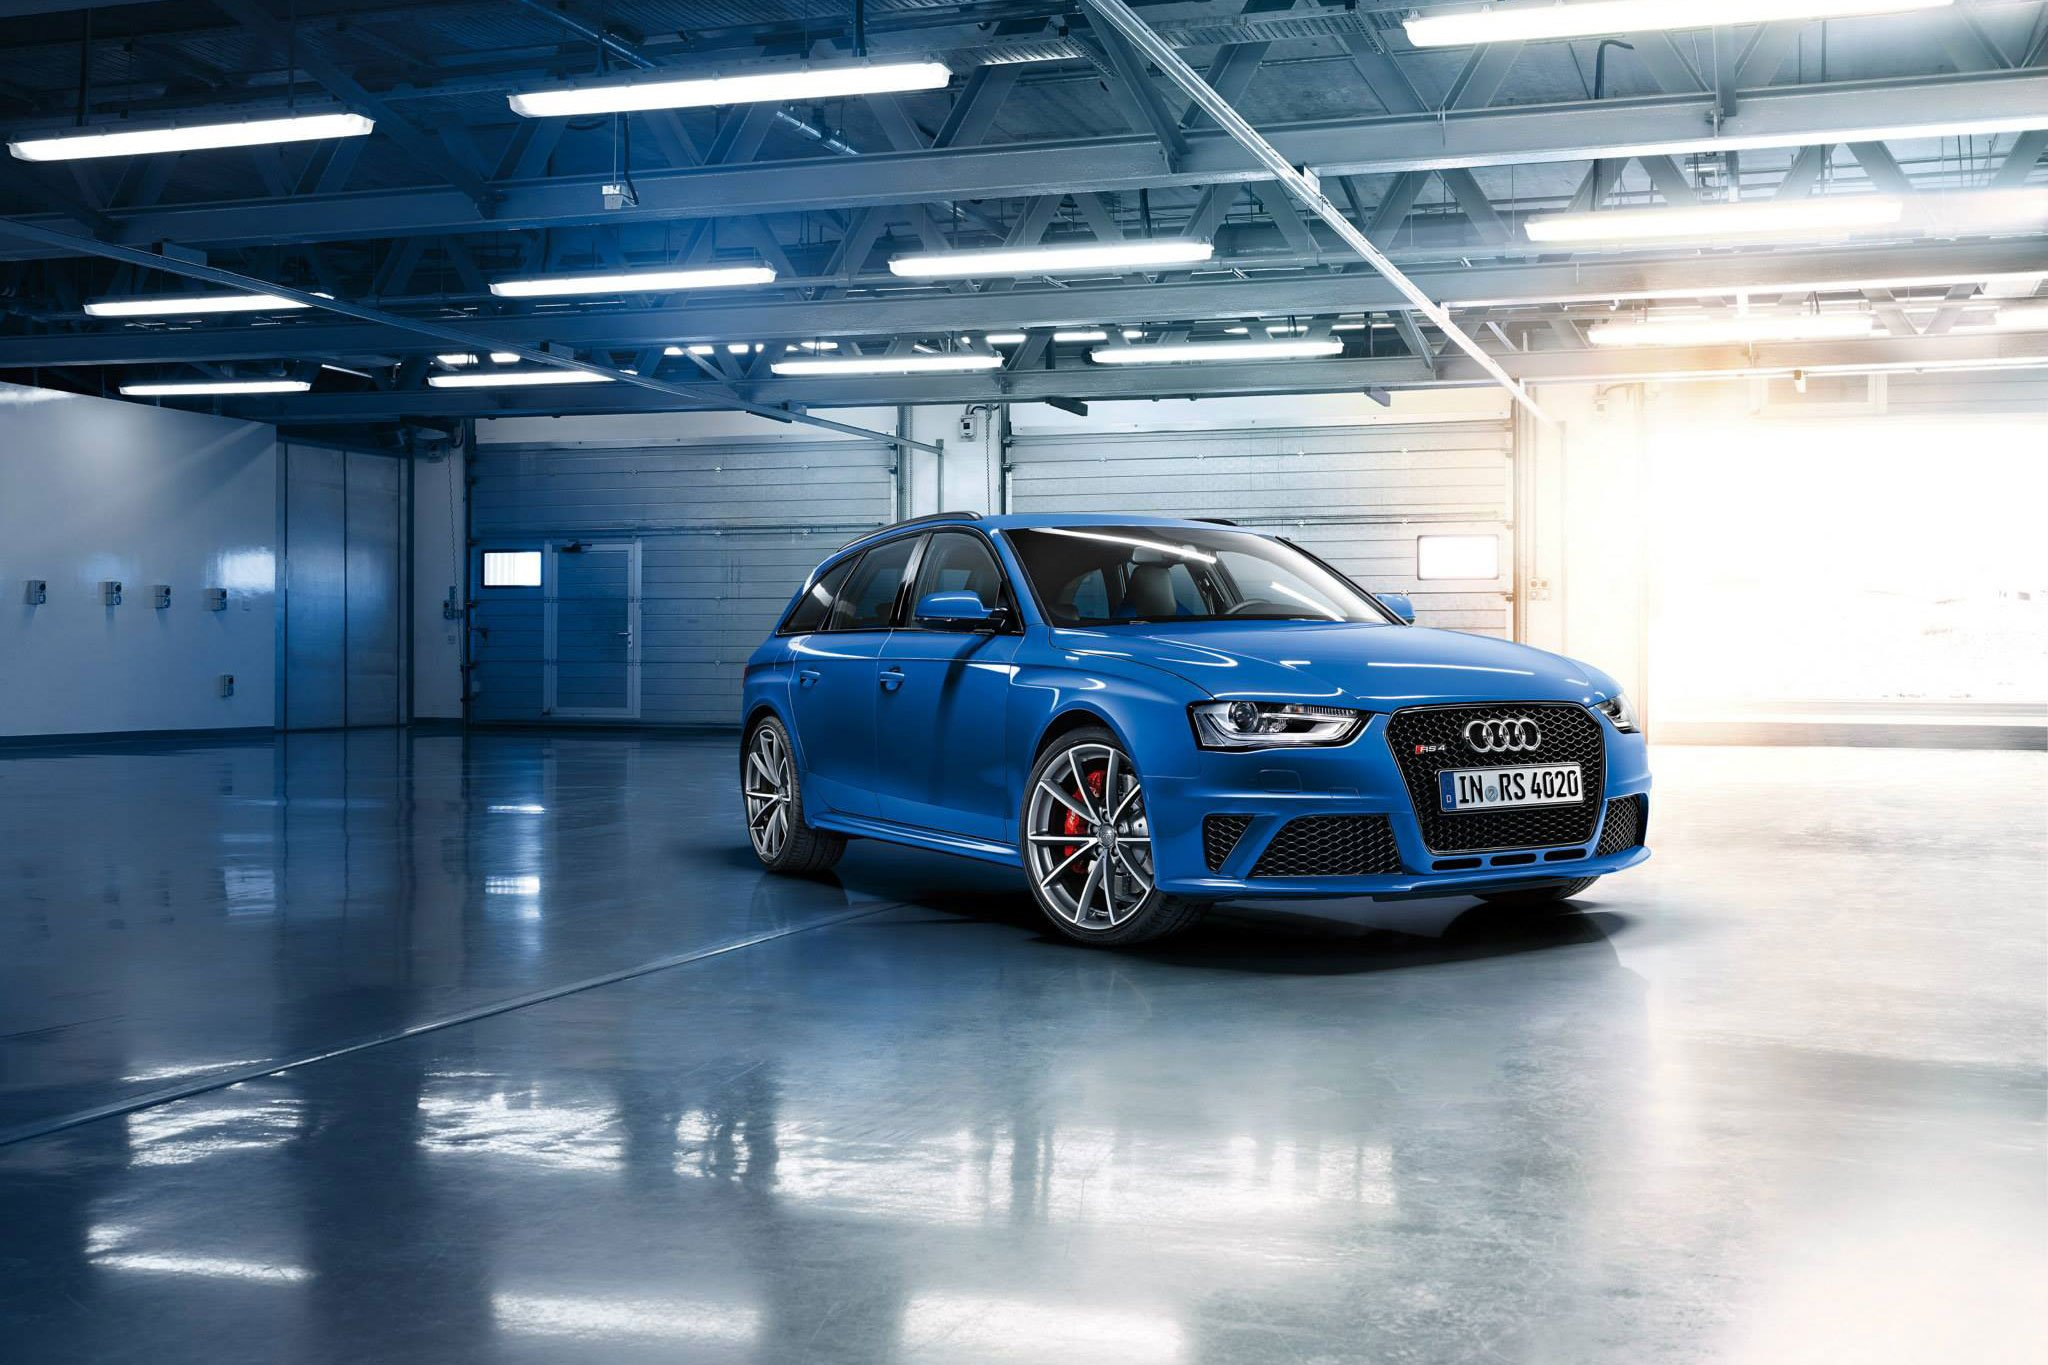 2014 audi s4 wallpaper - photo #47